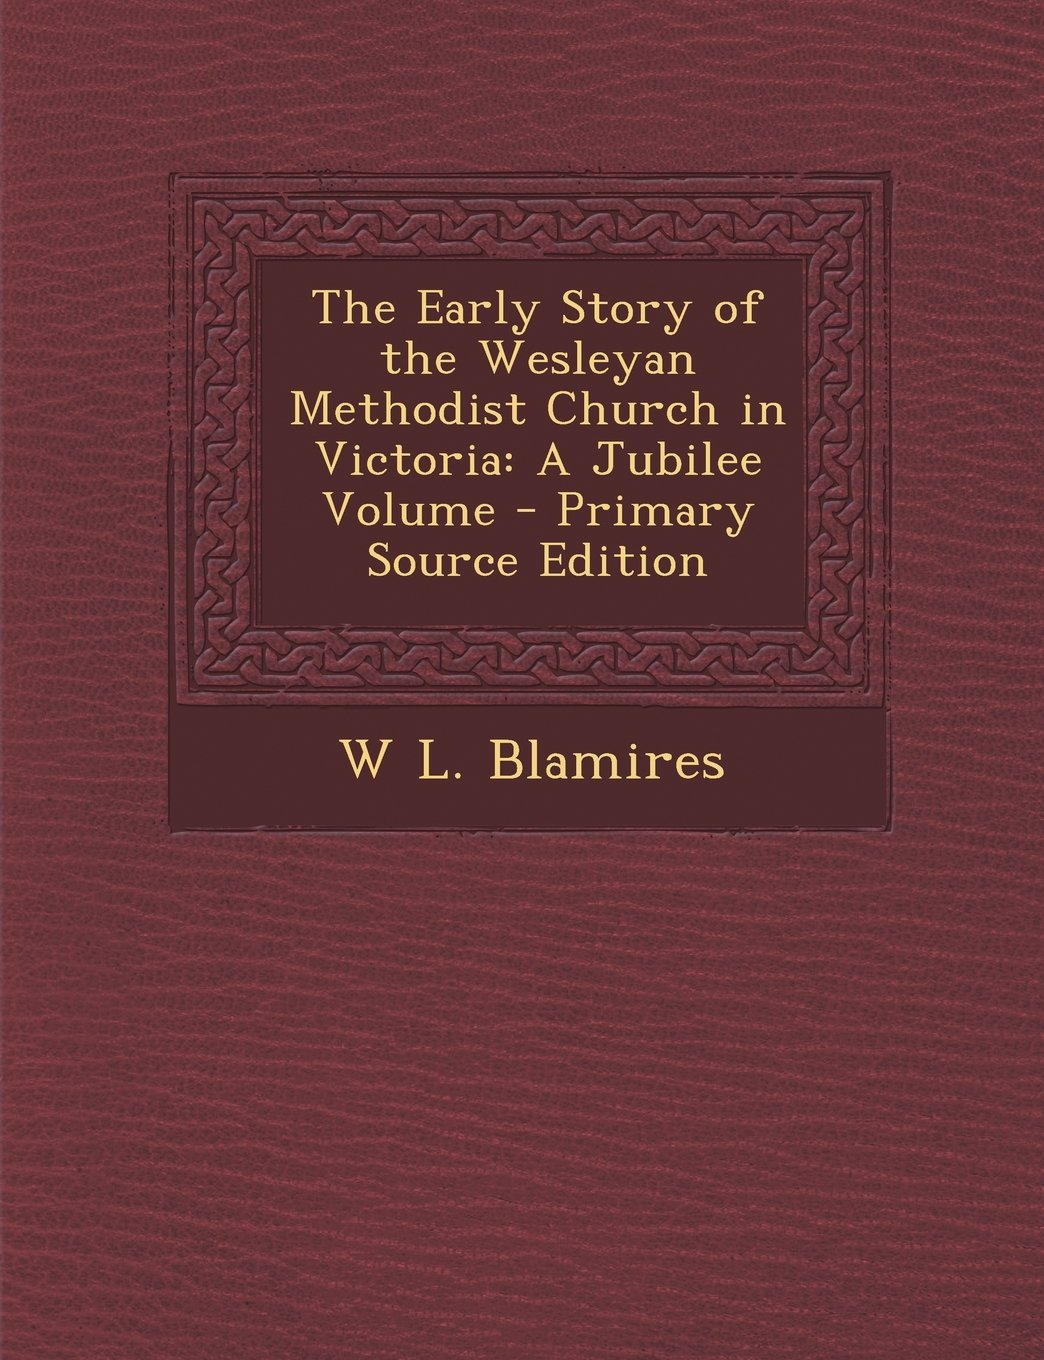 The Early Story of the Wesleyan Methodist Church in Victoria: A Jubilee Volume - Primary Source Edition PDF